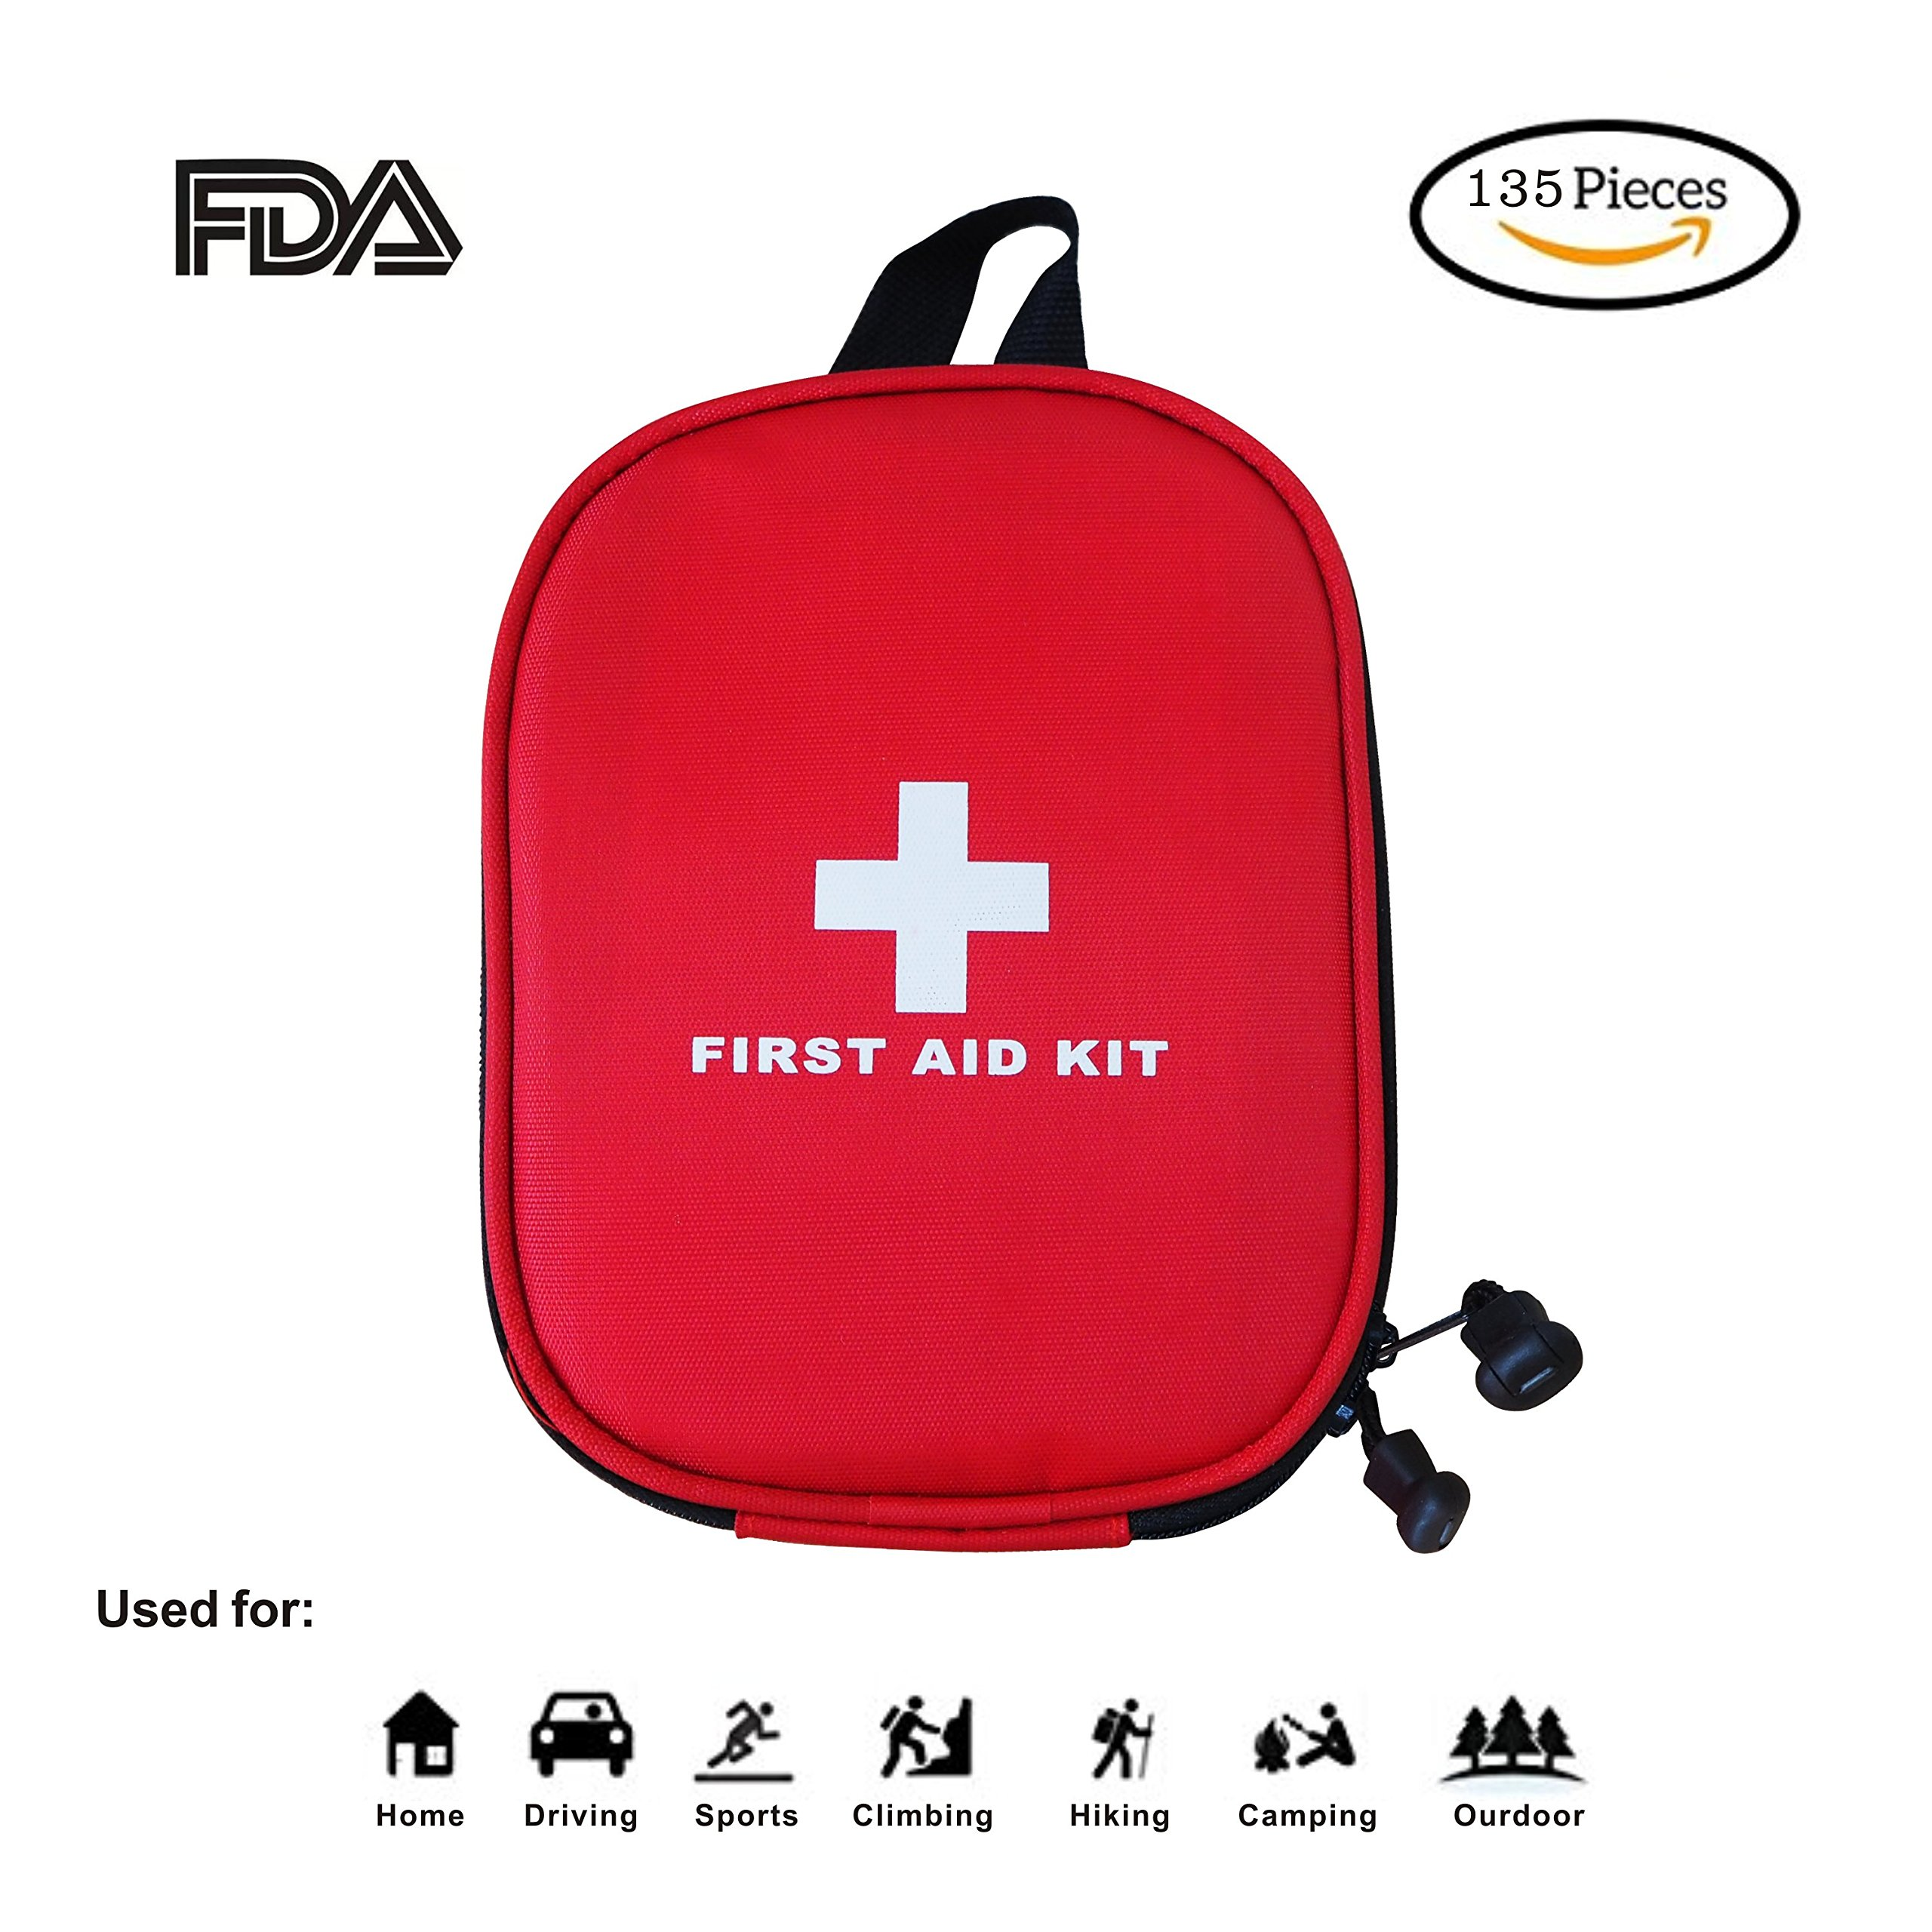 First Aid Kit - 135 Piece - for Car,Travel, Camping, Home,Hiking or Office | Complete Emergency Bag Fully stocked with Medical Supplies